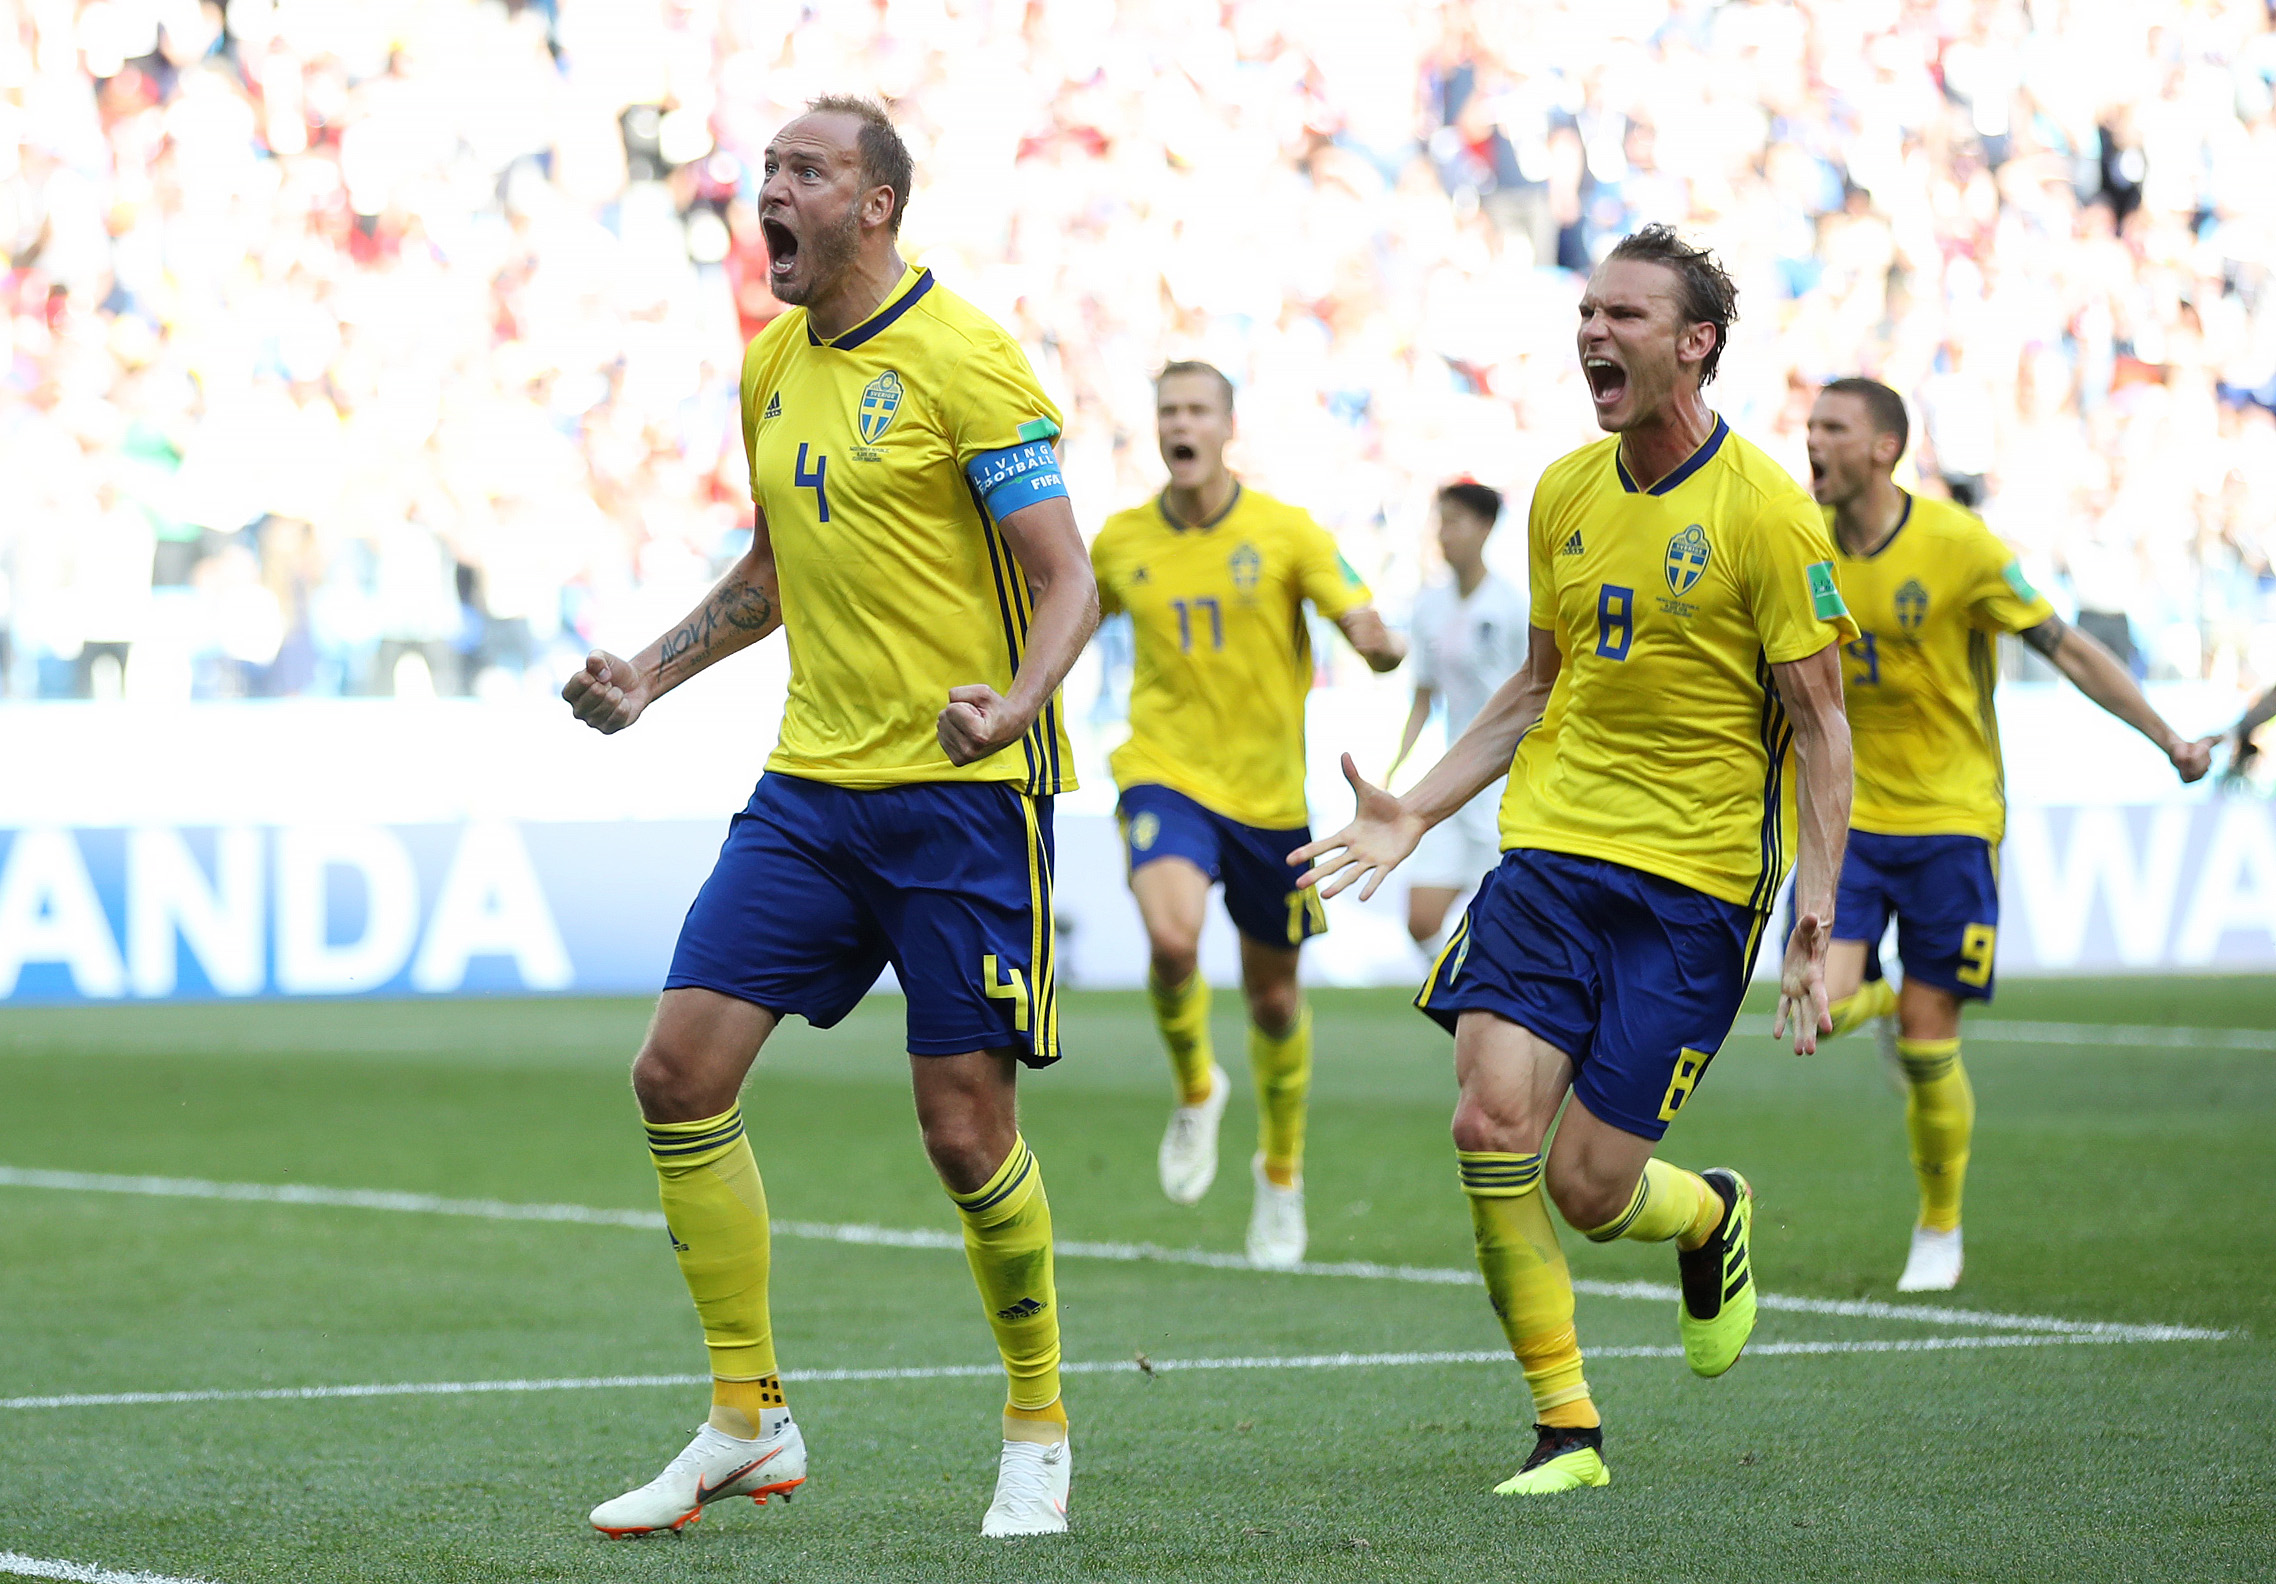 NIZHNIY NOVGOROD, RUSSIA - JUNE 18: Andreas Granqvist of Sweden (L) celebrates after scoring his team's first goal with team mate Albin Ekdal (R) during the 2018 FIFA World Cup Russia group F match between Sweden and Korea Republic at Nizhniy Novgorod Stadium on June 18, 2018 in Nizhniy Novgorod, Russia.